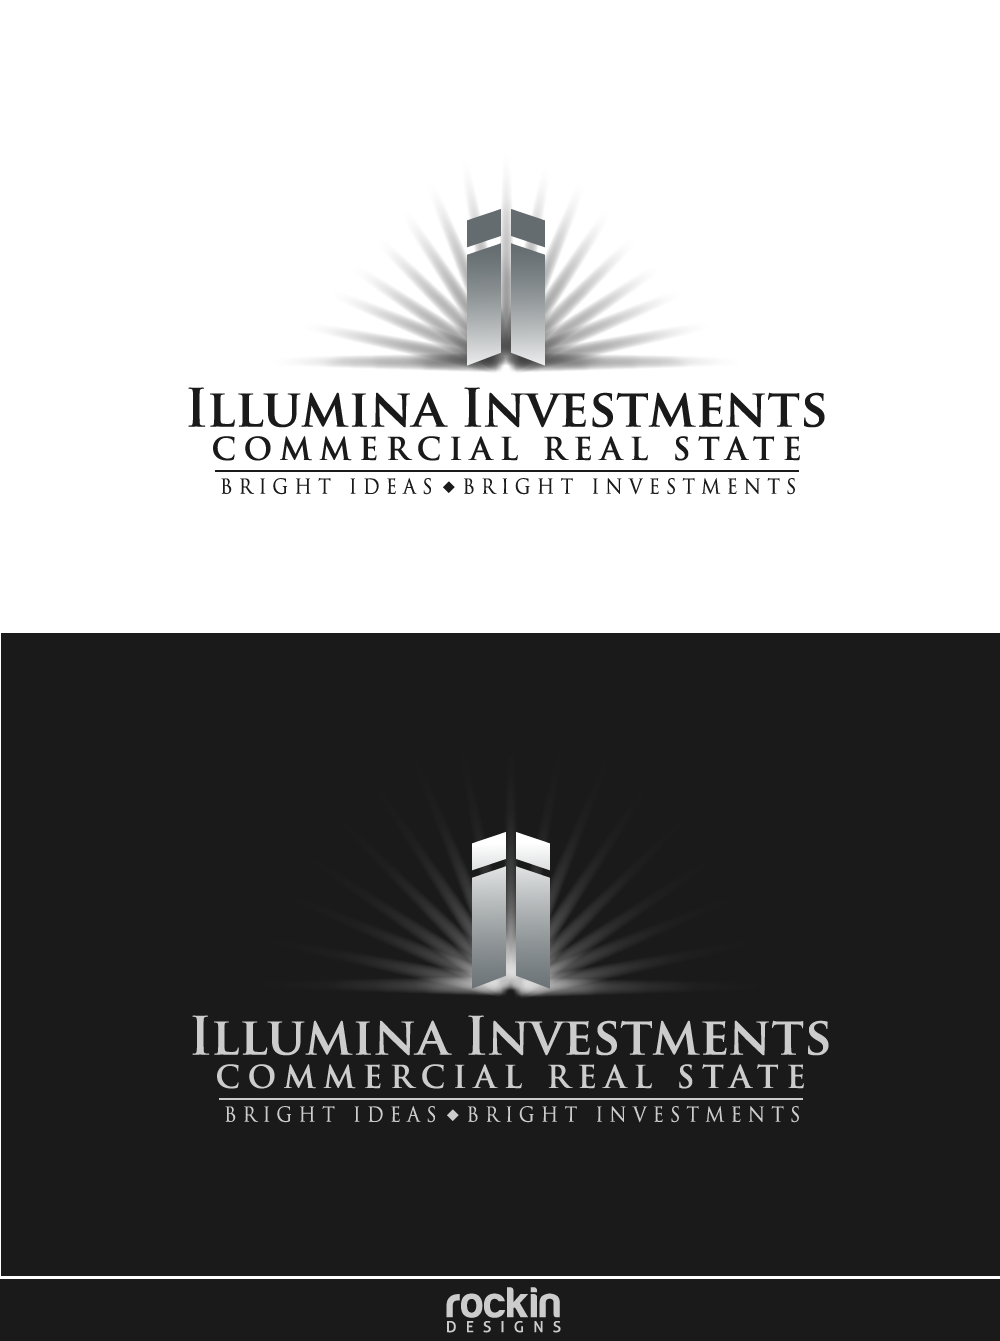 Logo Design by rockin - Entry No. 76 in the Logo Design Contest Creative Logo Design for Illumina Investments.